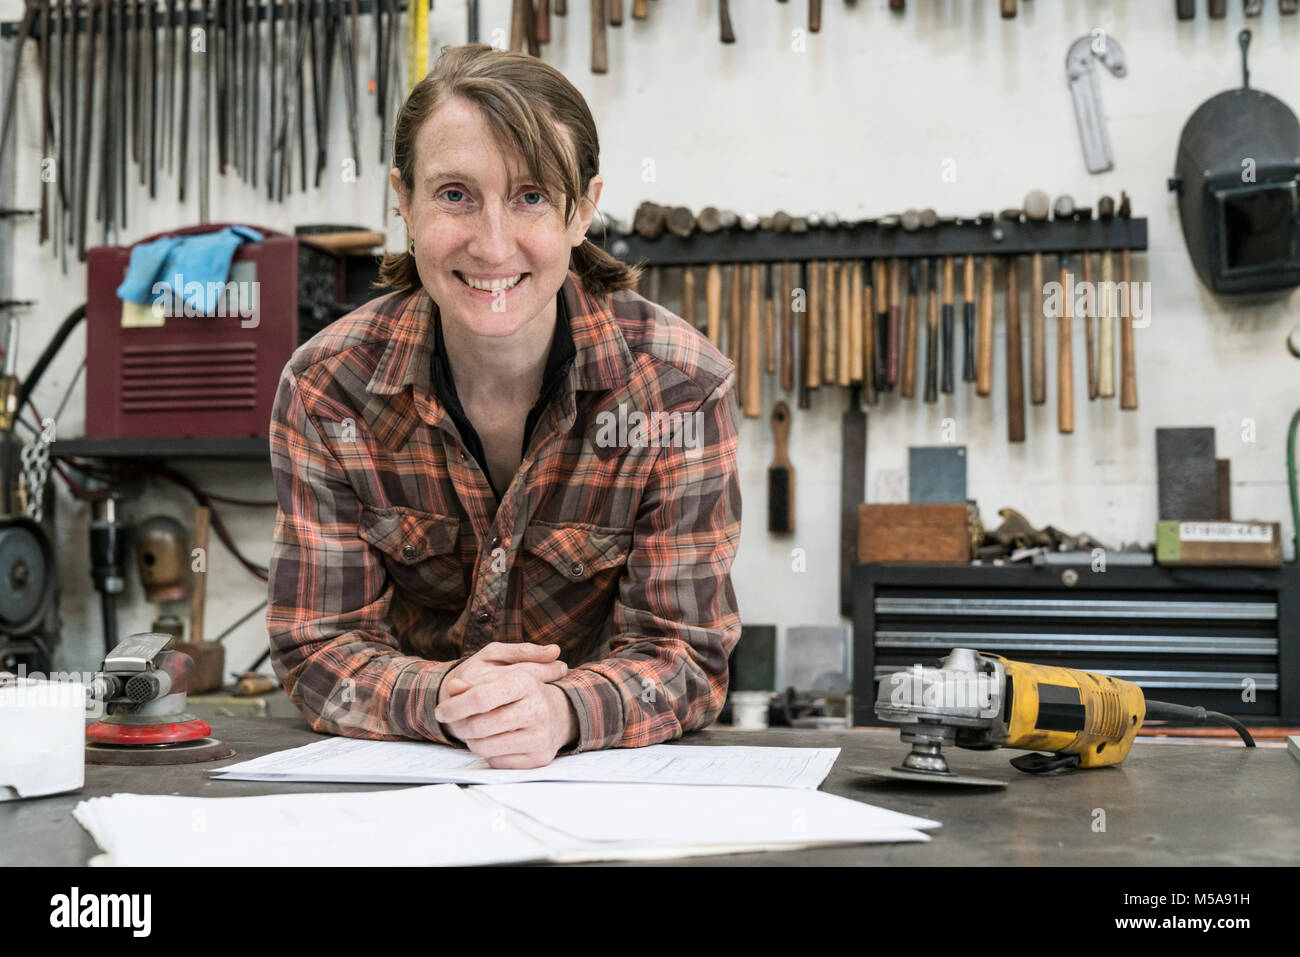 Blond woman wearing checkered shirt standing in metal workshop, looking at camera. - Stock Image